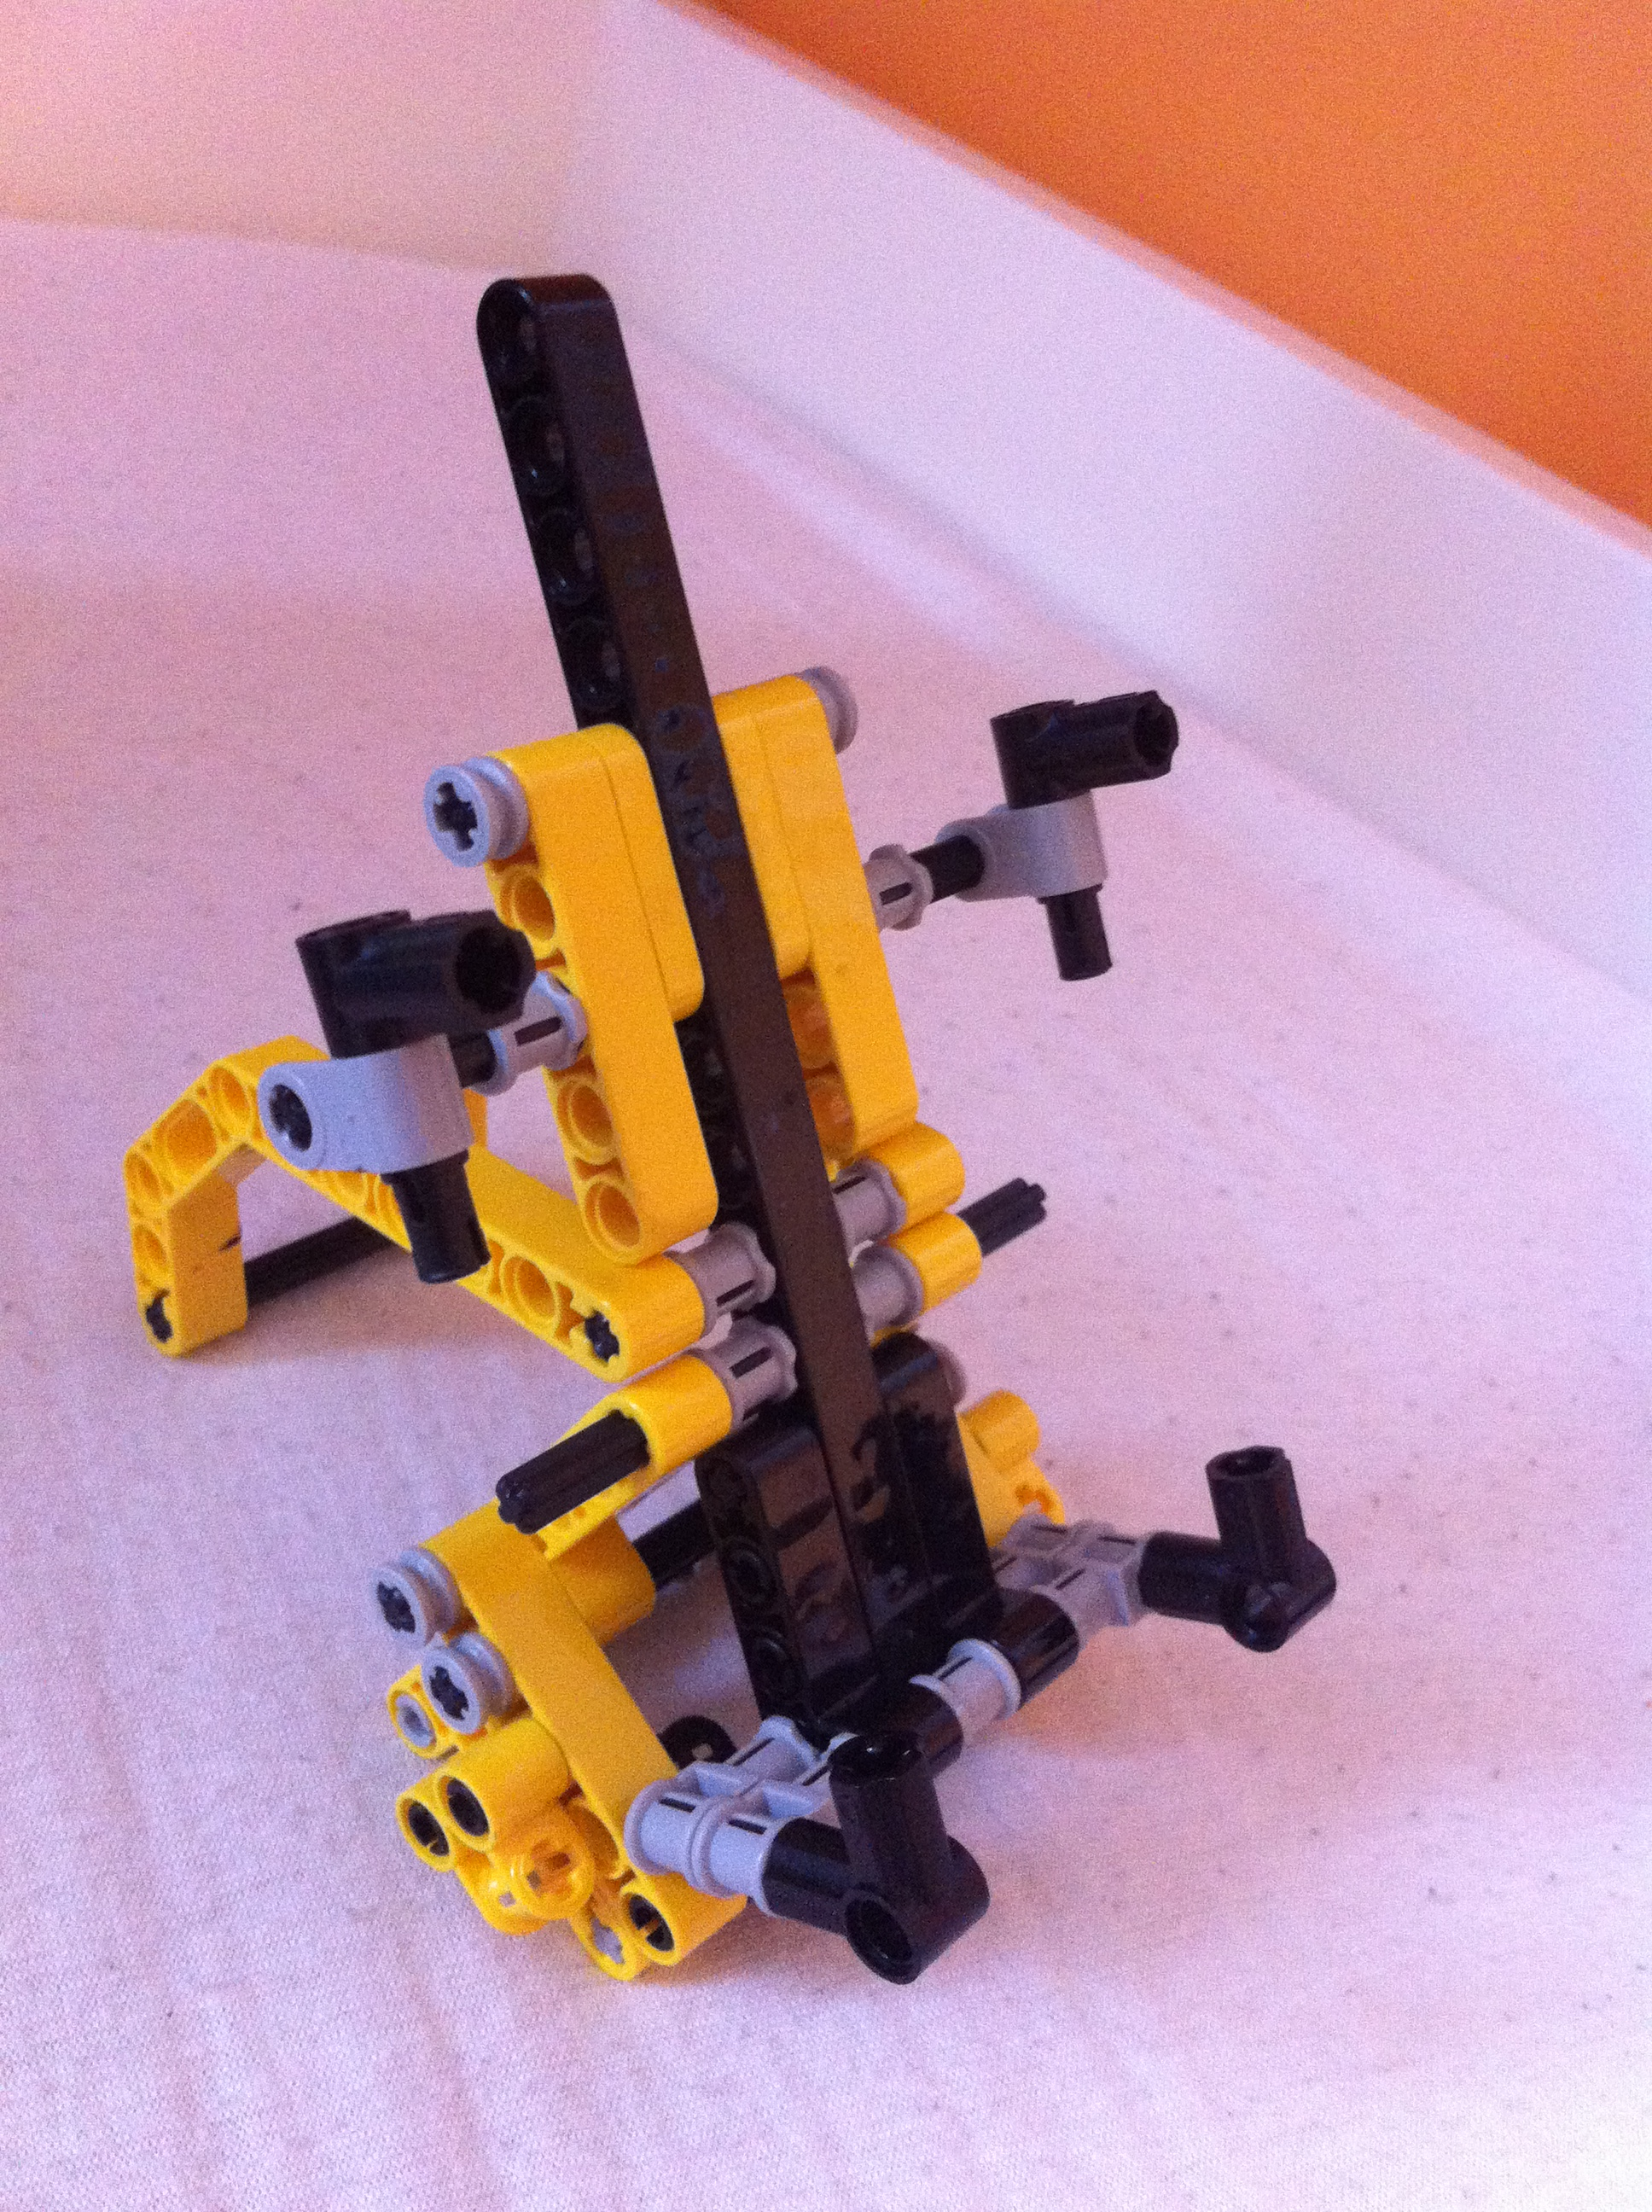 Lego iPhone (and smartphone) stand, docking available *UPDATED*